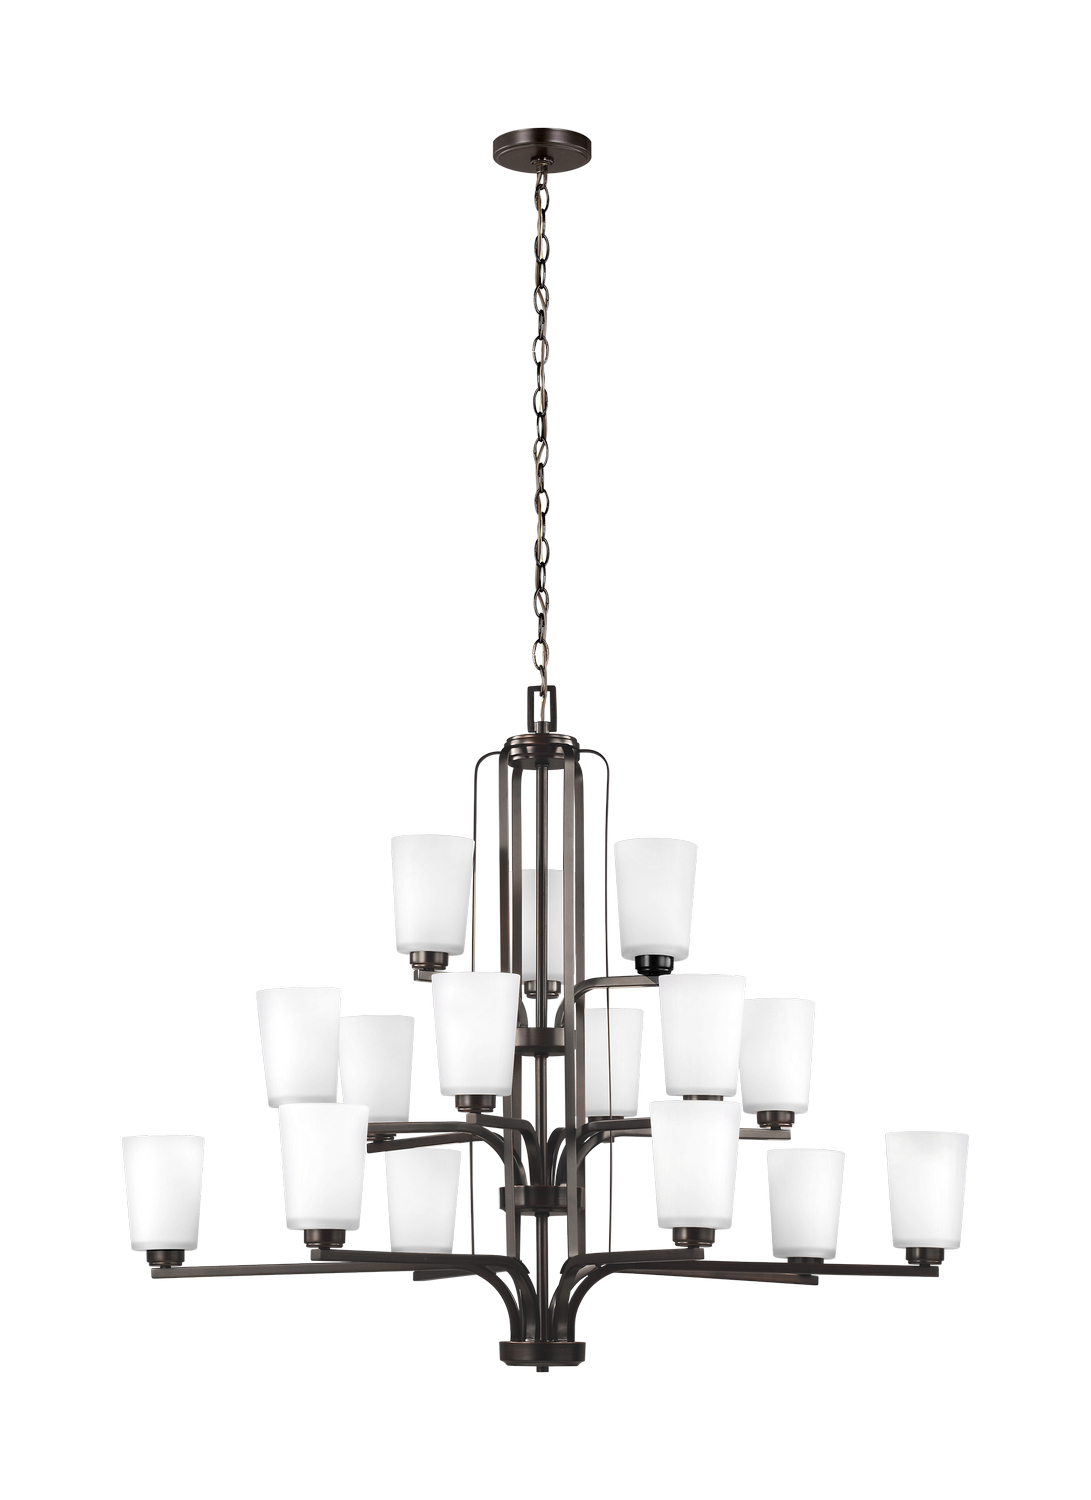 15 Light Chandelier from the Franport collection by Seagull 3128915 710